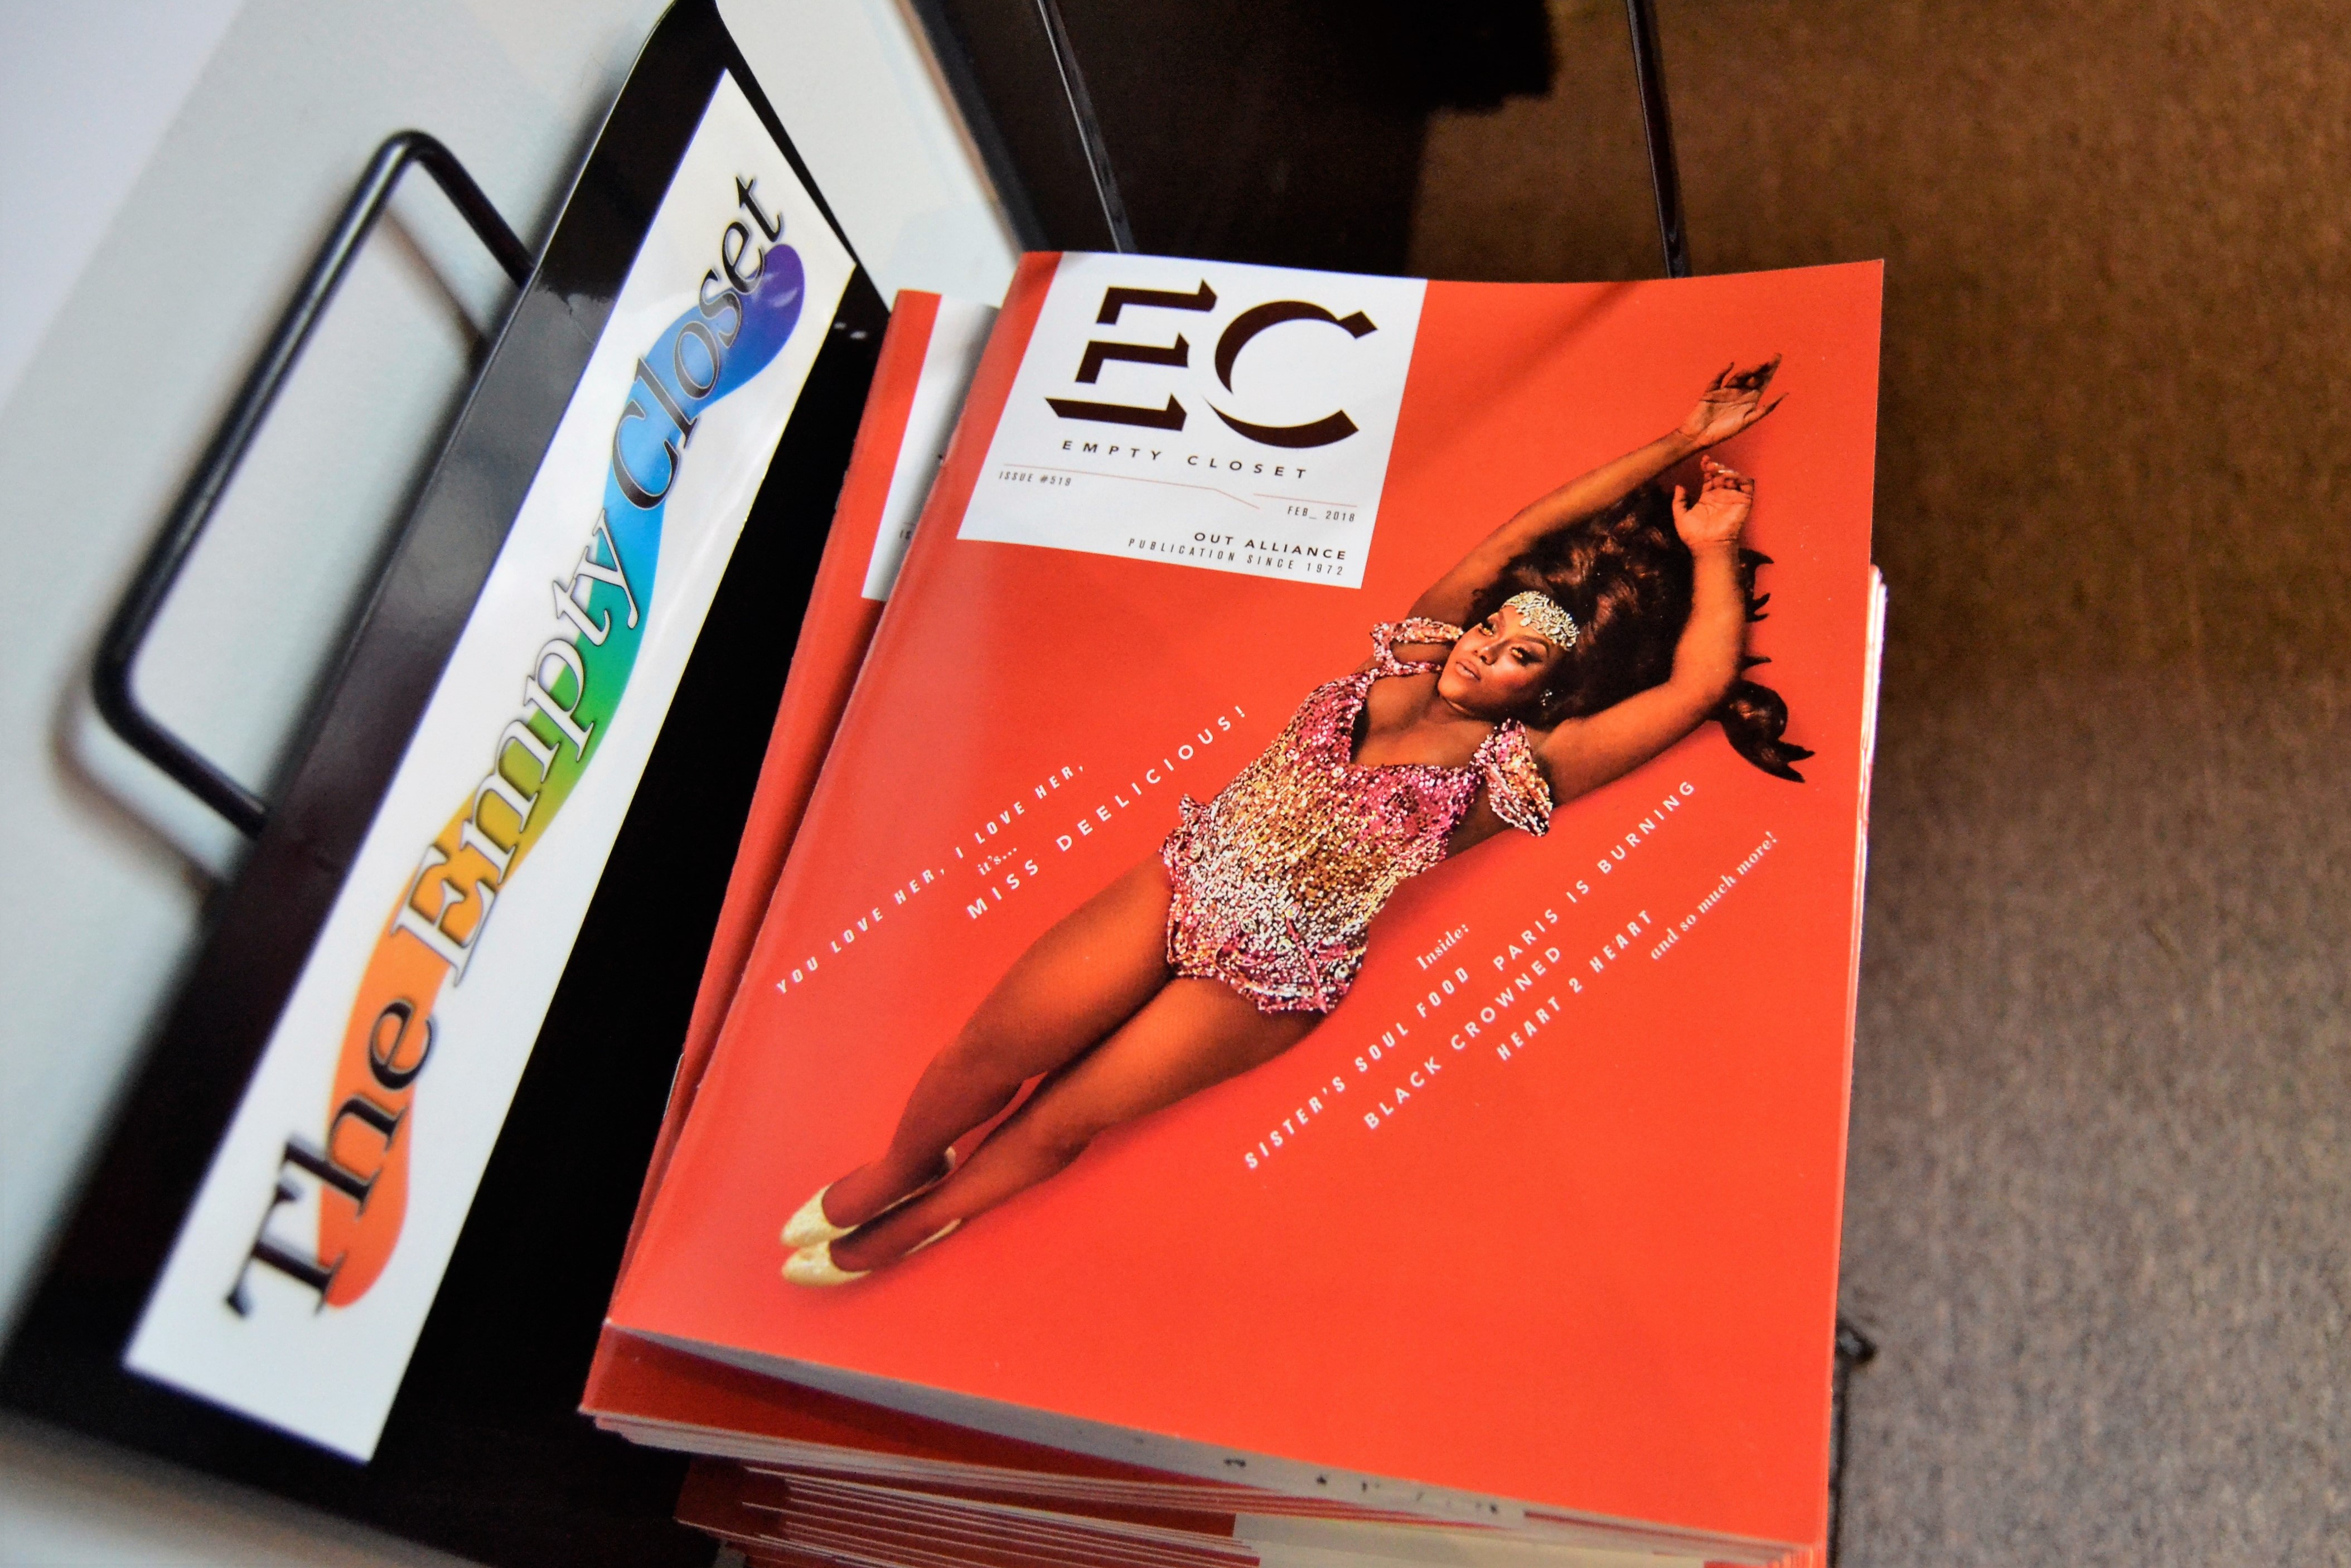 photo of a Empty Closet magazine rack with copies of Empty Closet in it